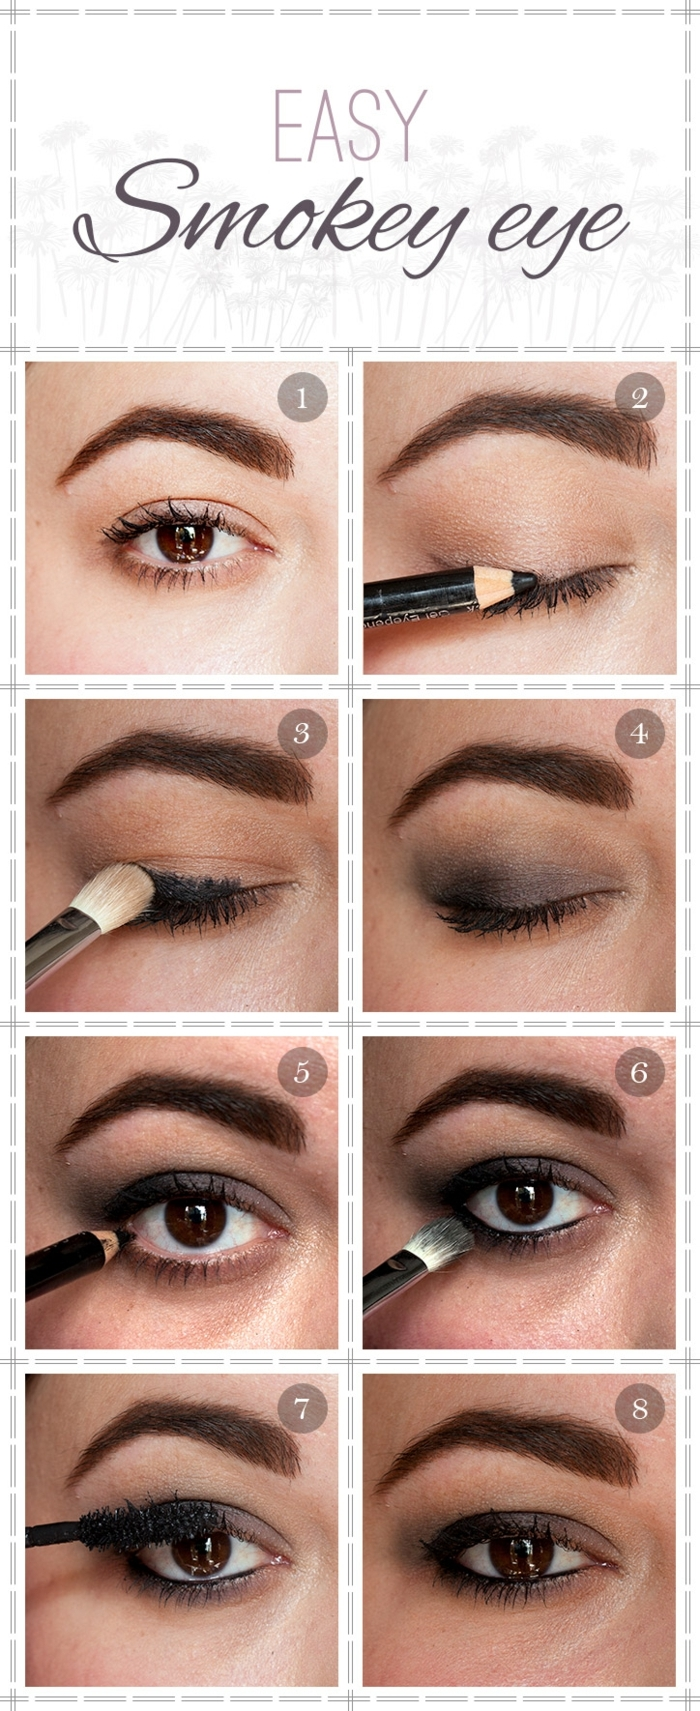 Tutoriel maquillage yeux marrons - Tuto maquillage yeux ...